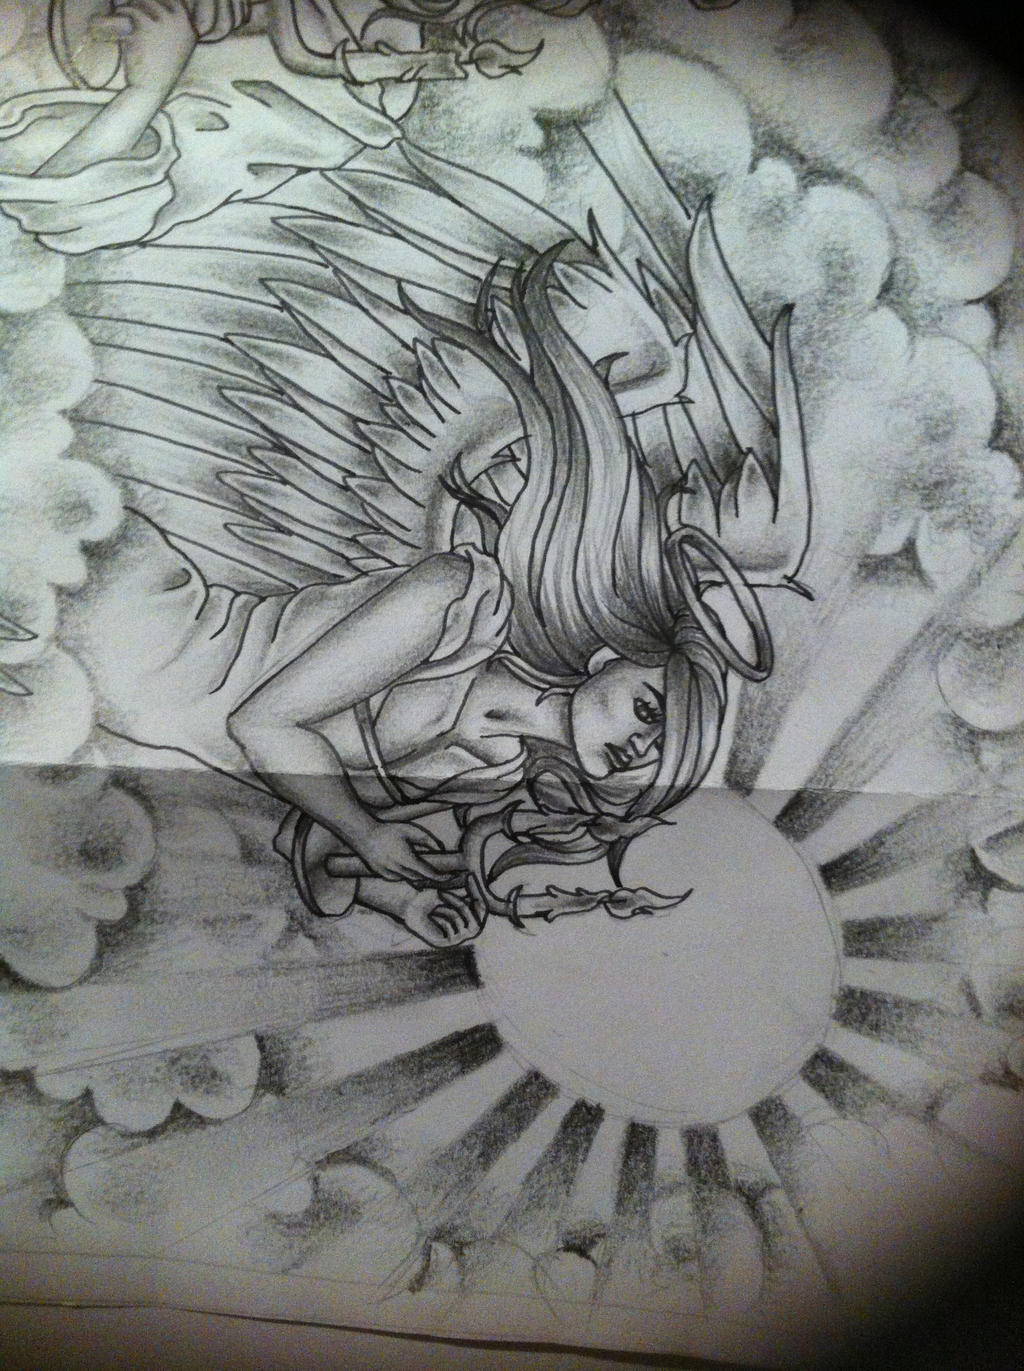 Angel tattoo design by tattoosuzette on deviantart for Angel in clouds tattoo